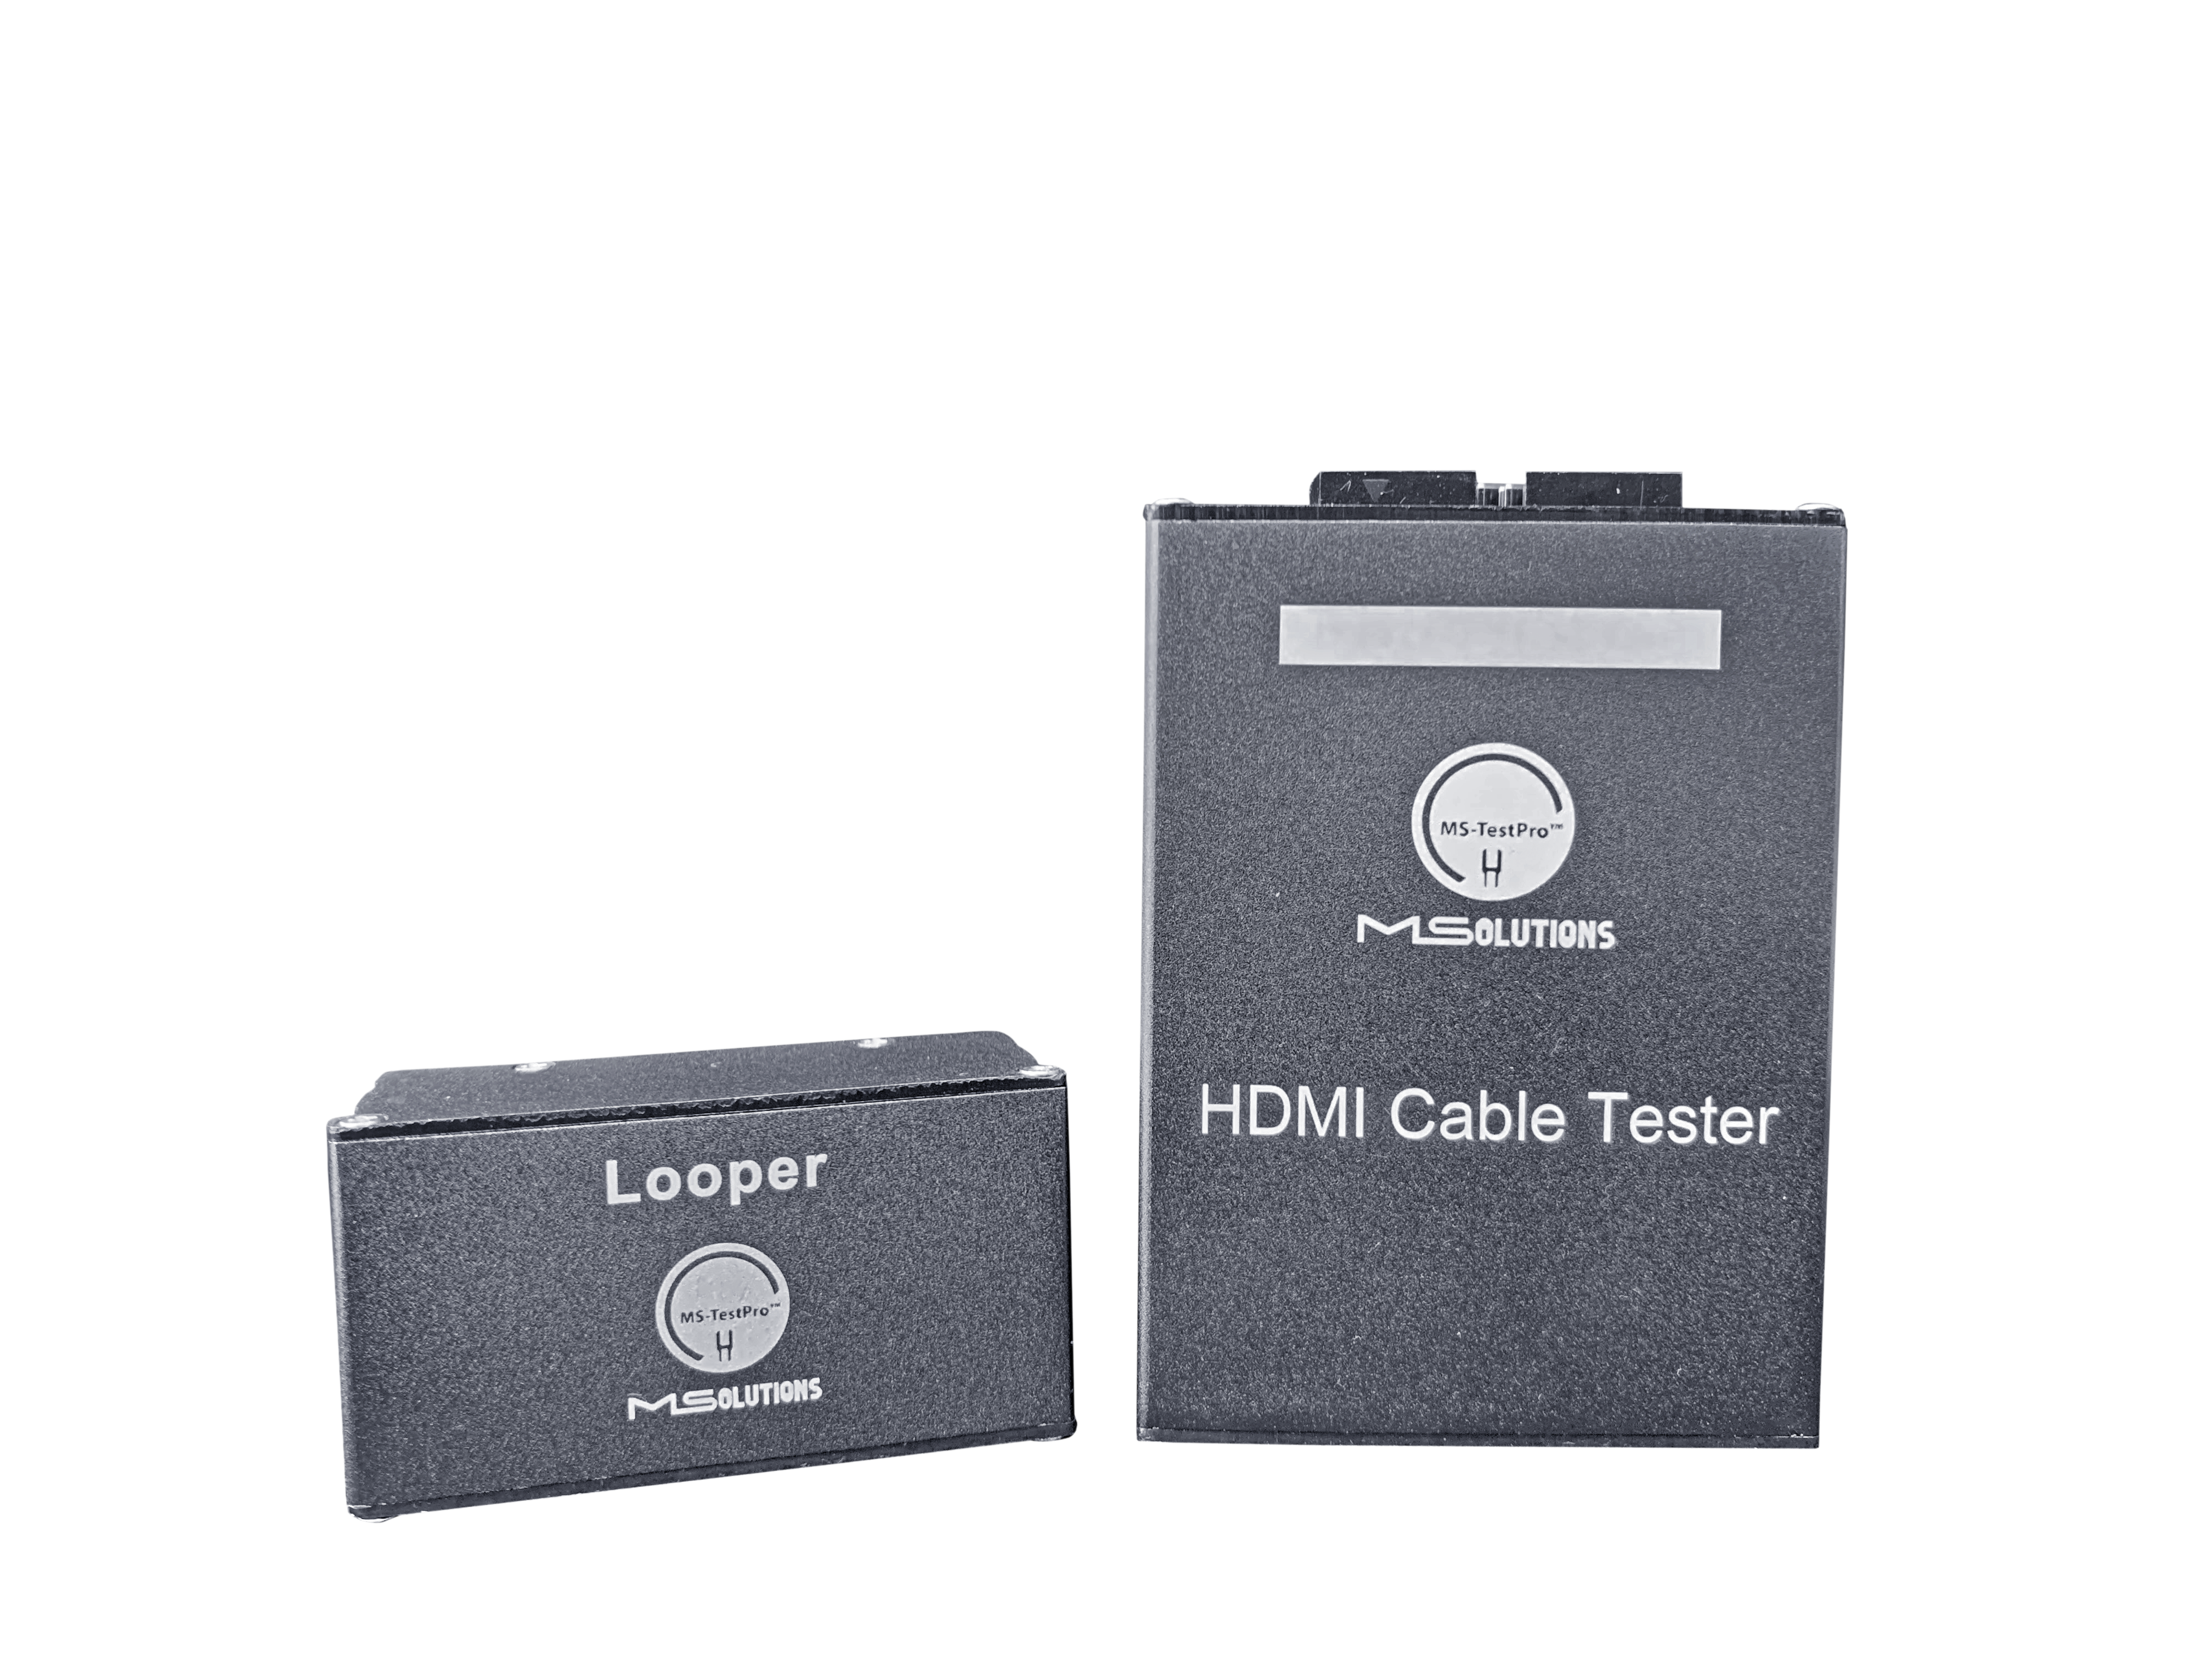 HDMI Cable Tester